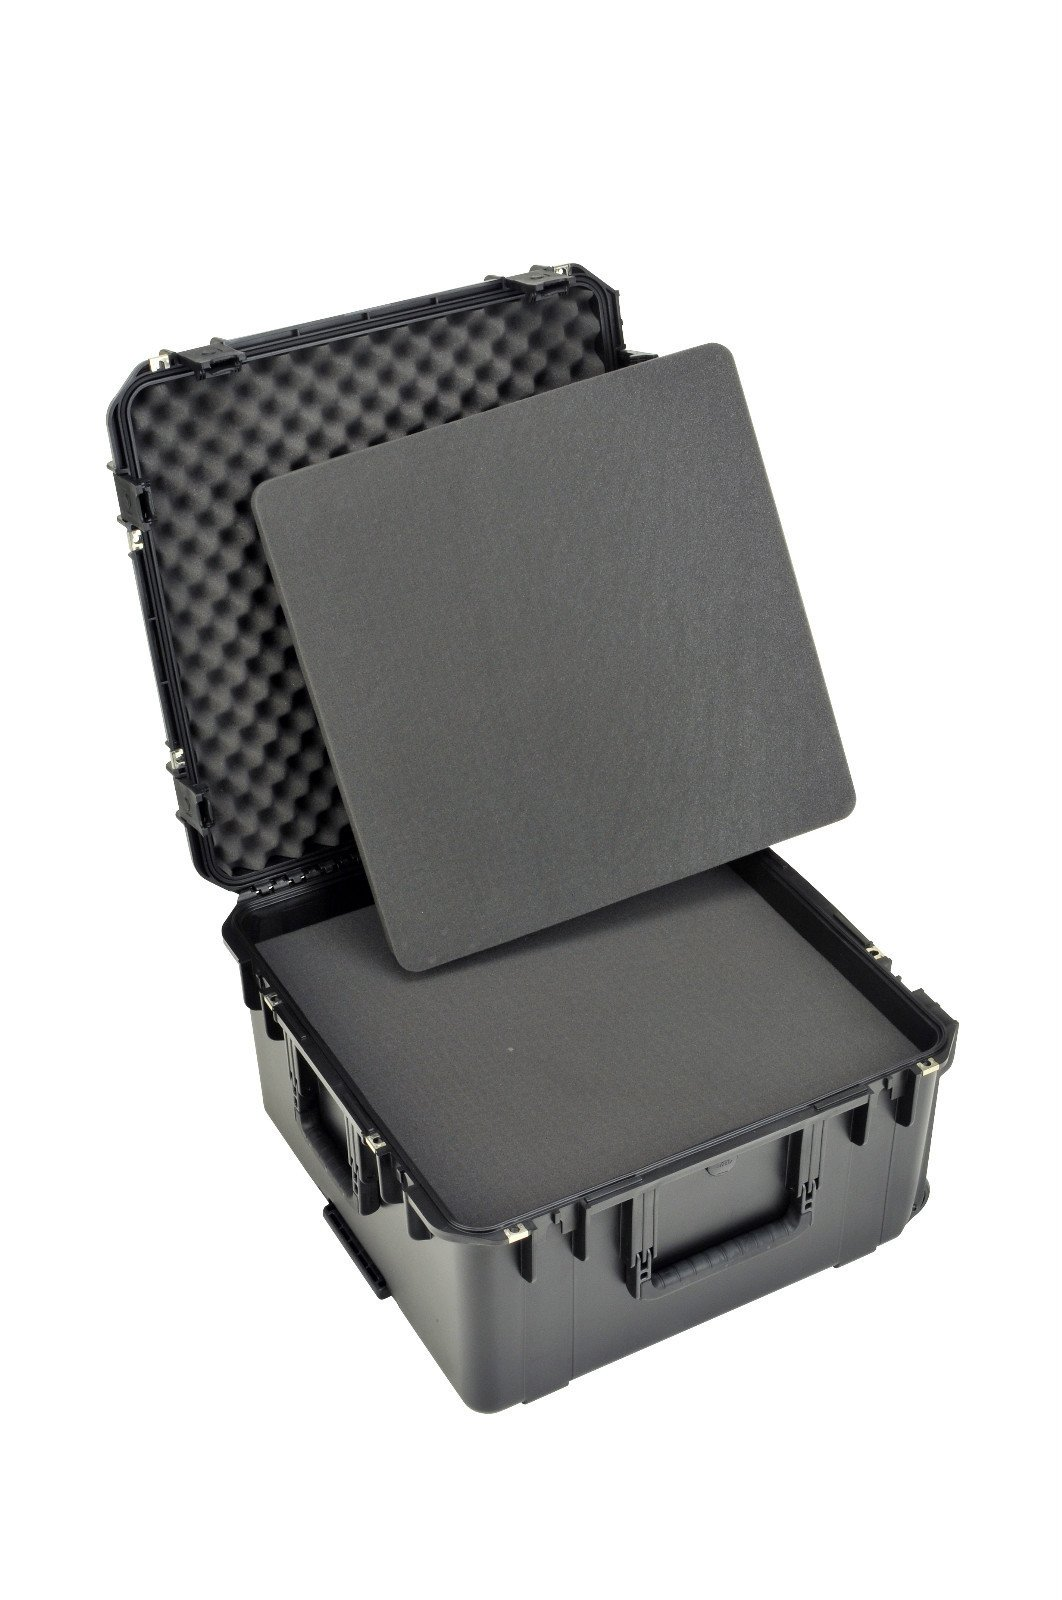 SKB Injection Molded Water-tight Case 22.5 x 22.5 x 12.5 Inches with Wheels Cubed Foam (3I-2222-12BC)